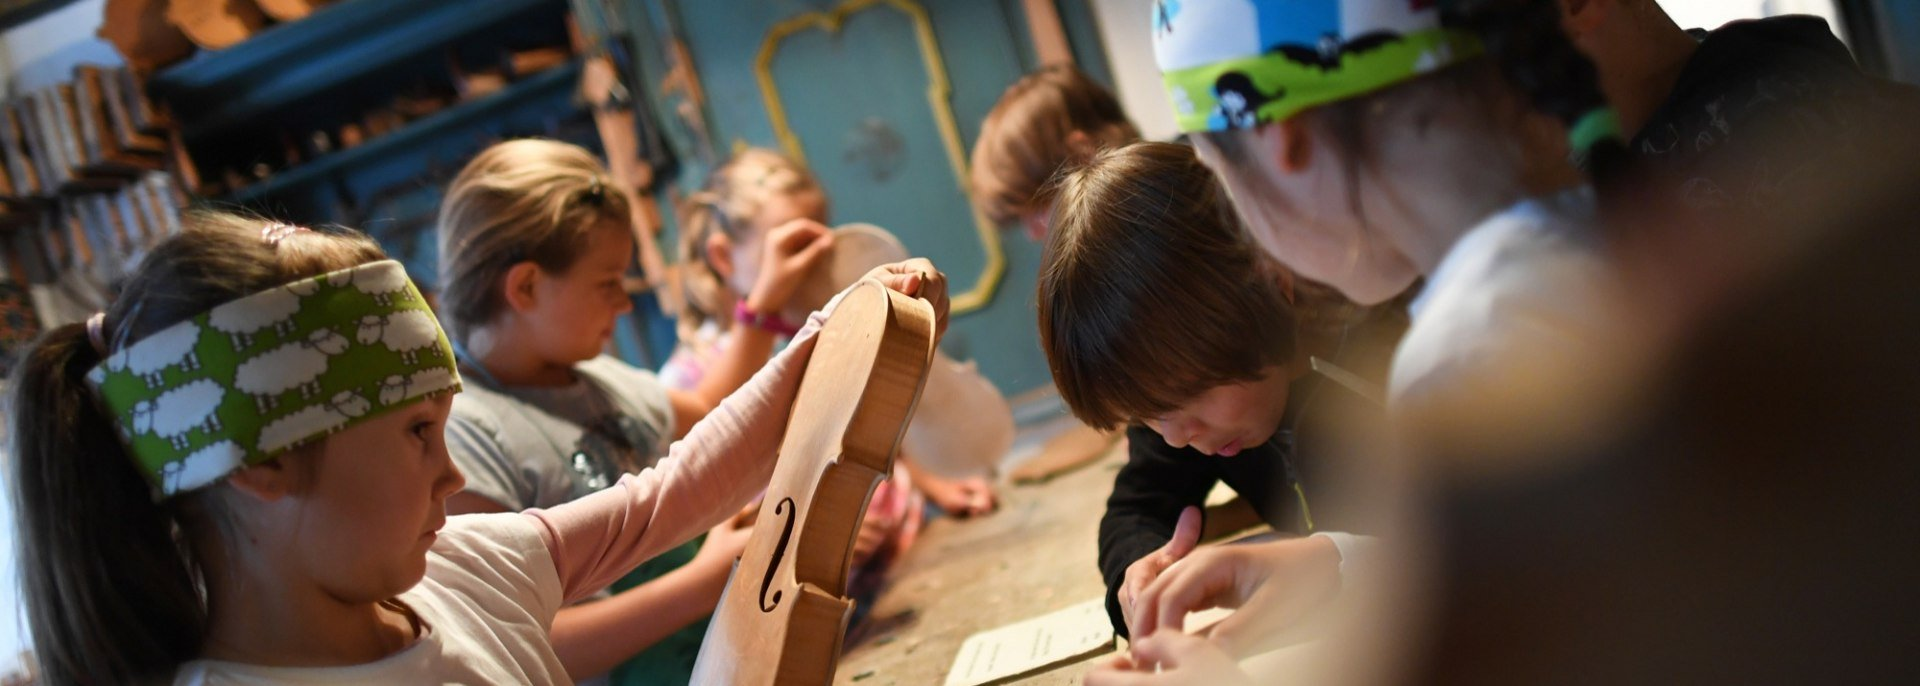 From wood to violin - children's program , © Alpenwelt Karwendel | Angelika Warmuth